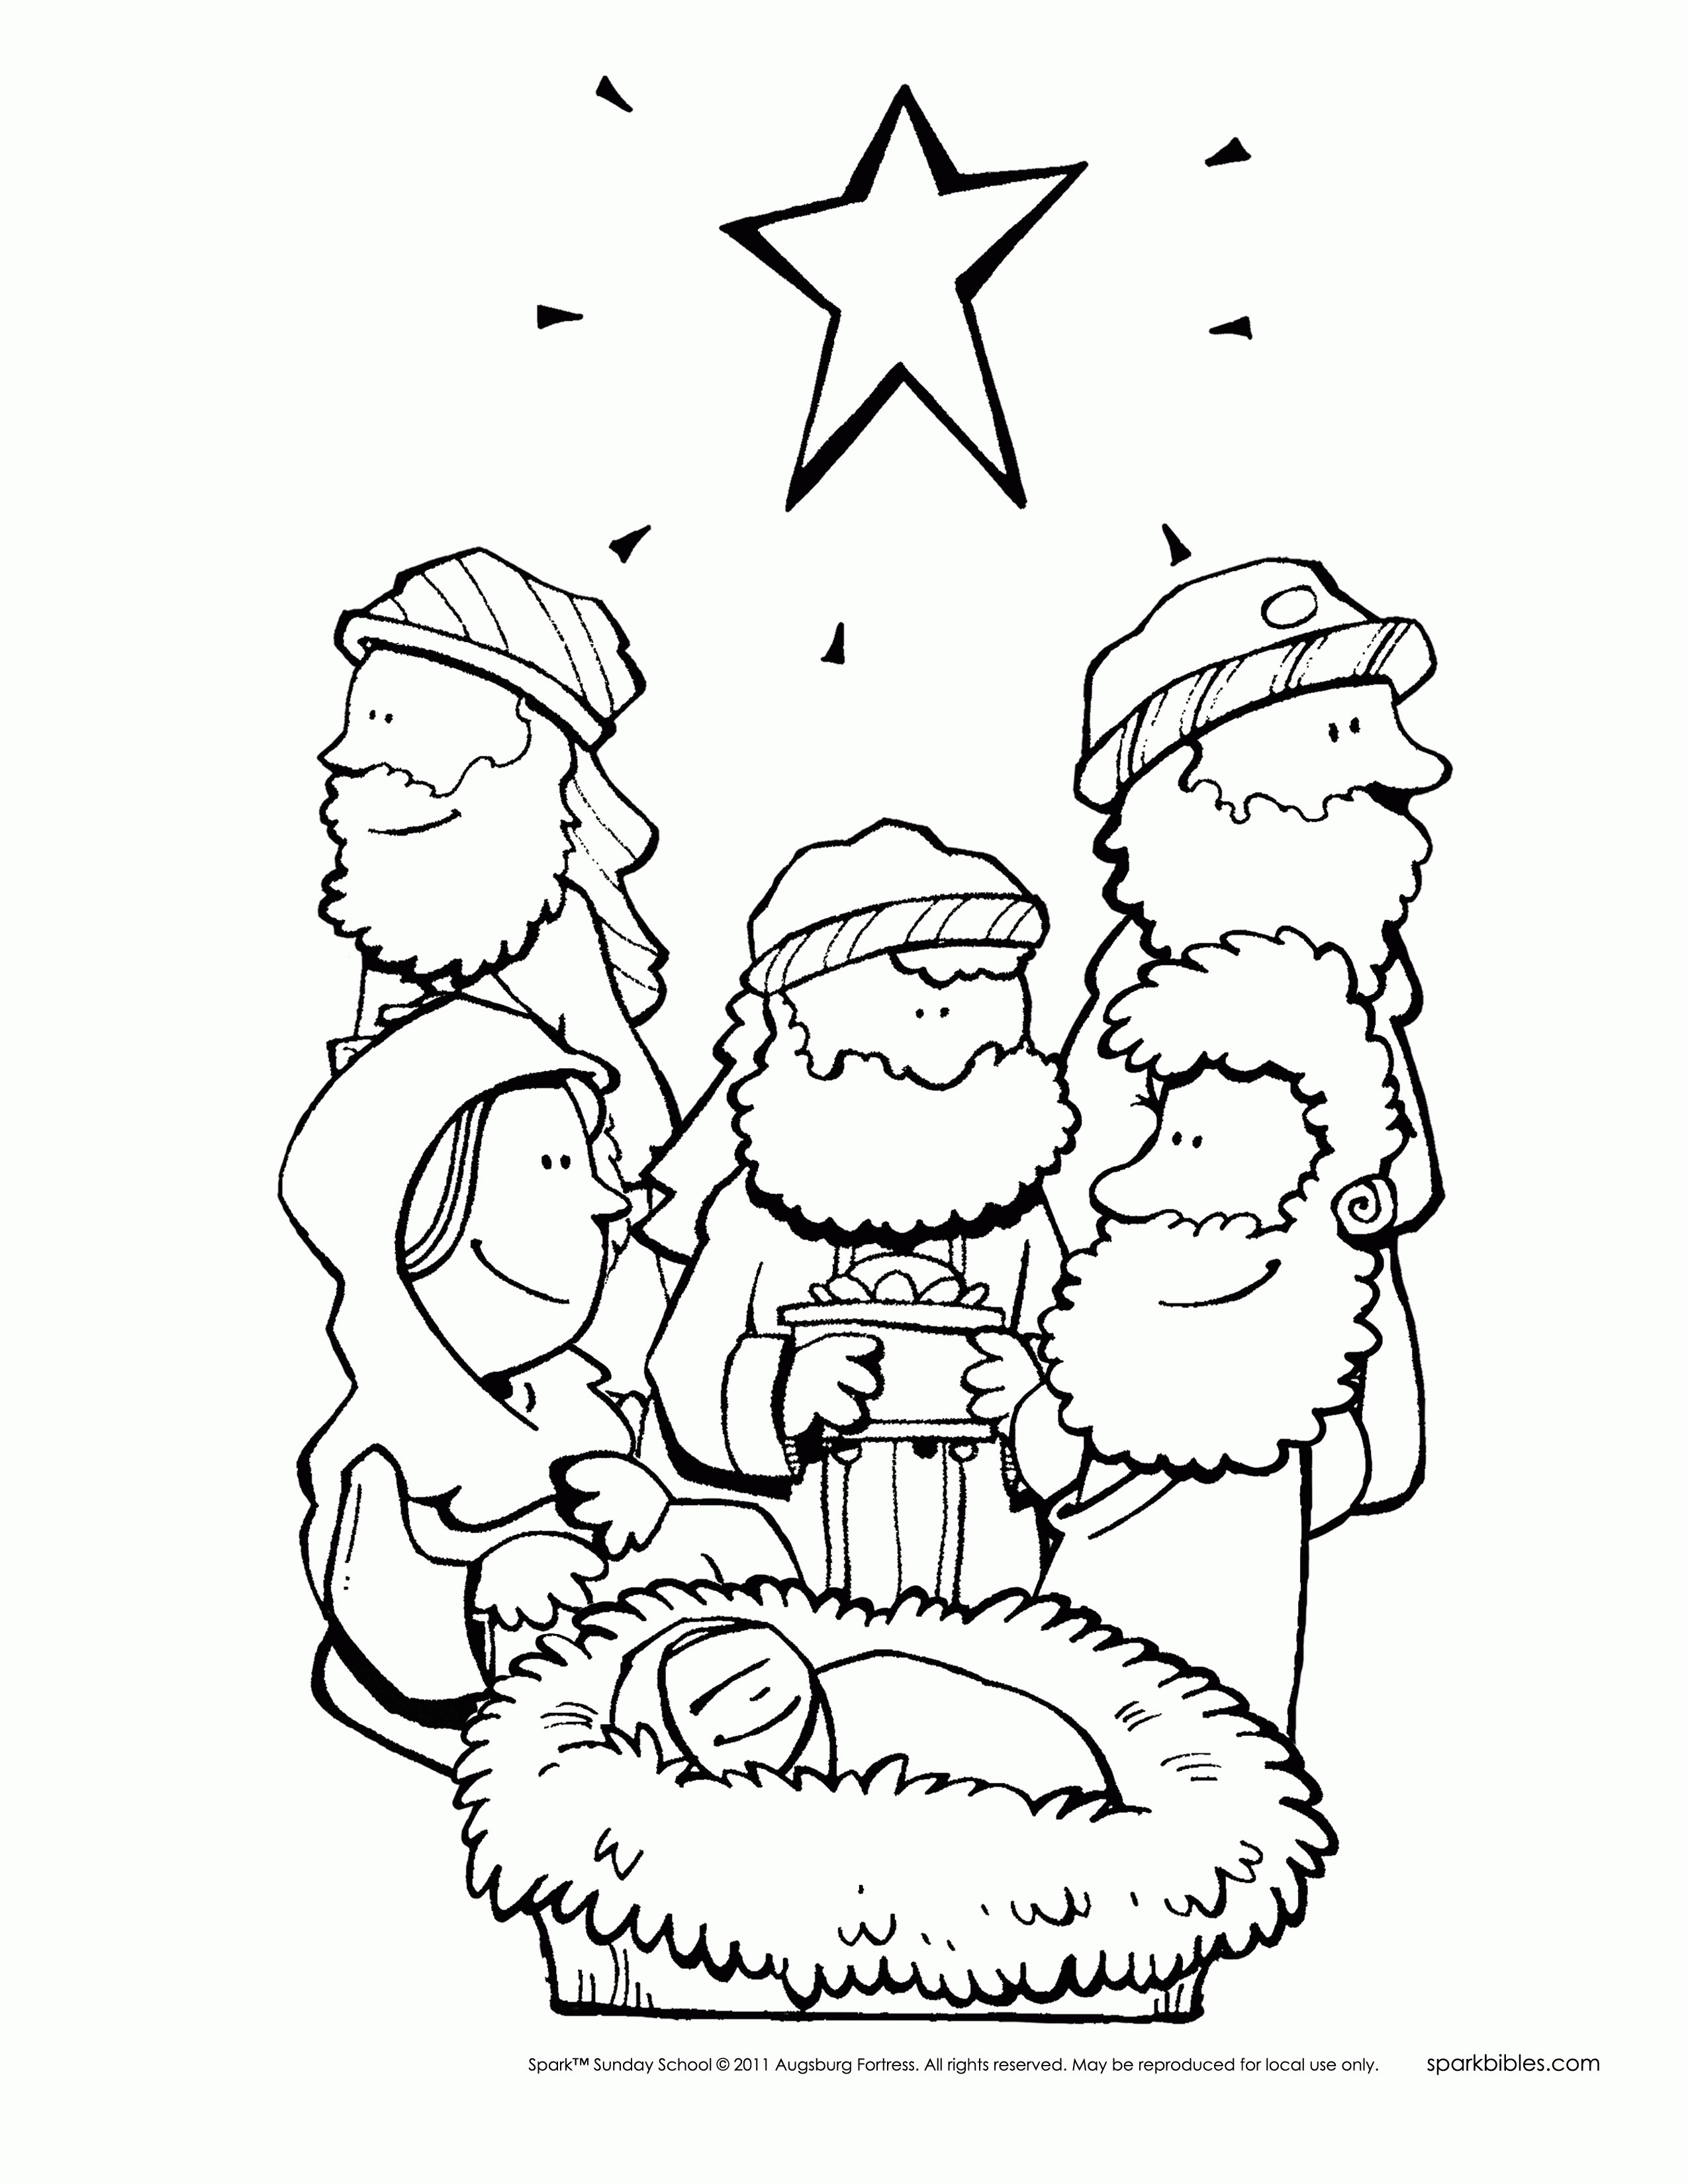 Coloring Pages Bible Stories Preschoolers Awesome Coloring Pages 53 - Free Printable Bible Characters Coloring Pages